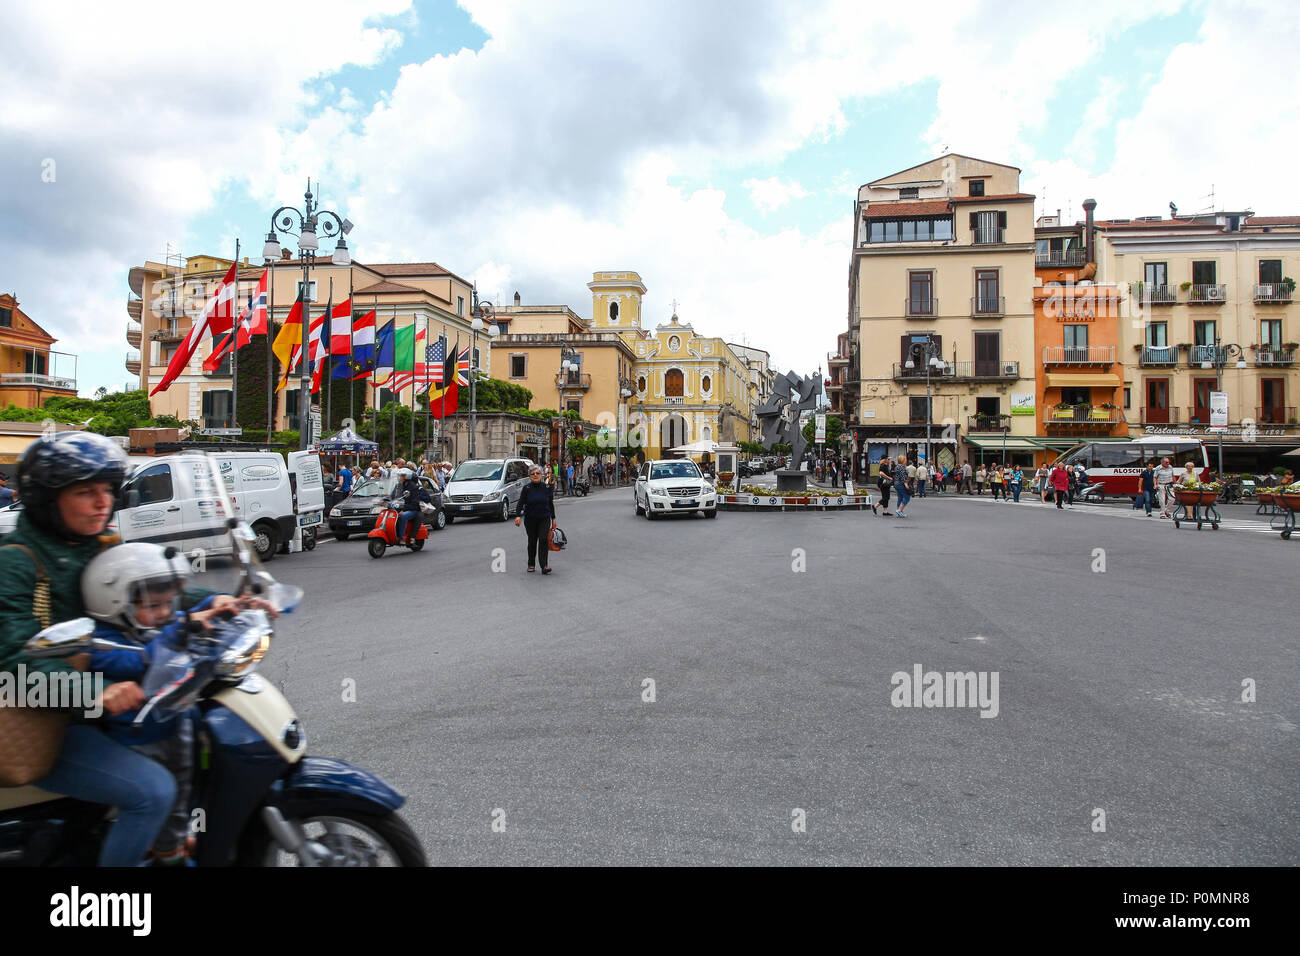 Piazza Tasso is a central place and square in the middle Sorrento, Italy, - Stock Image